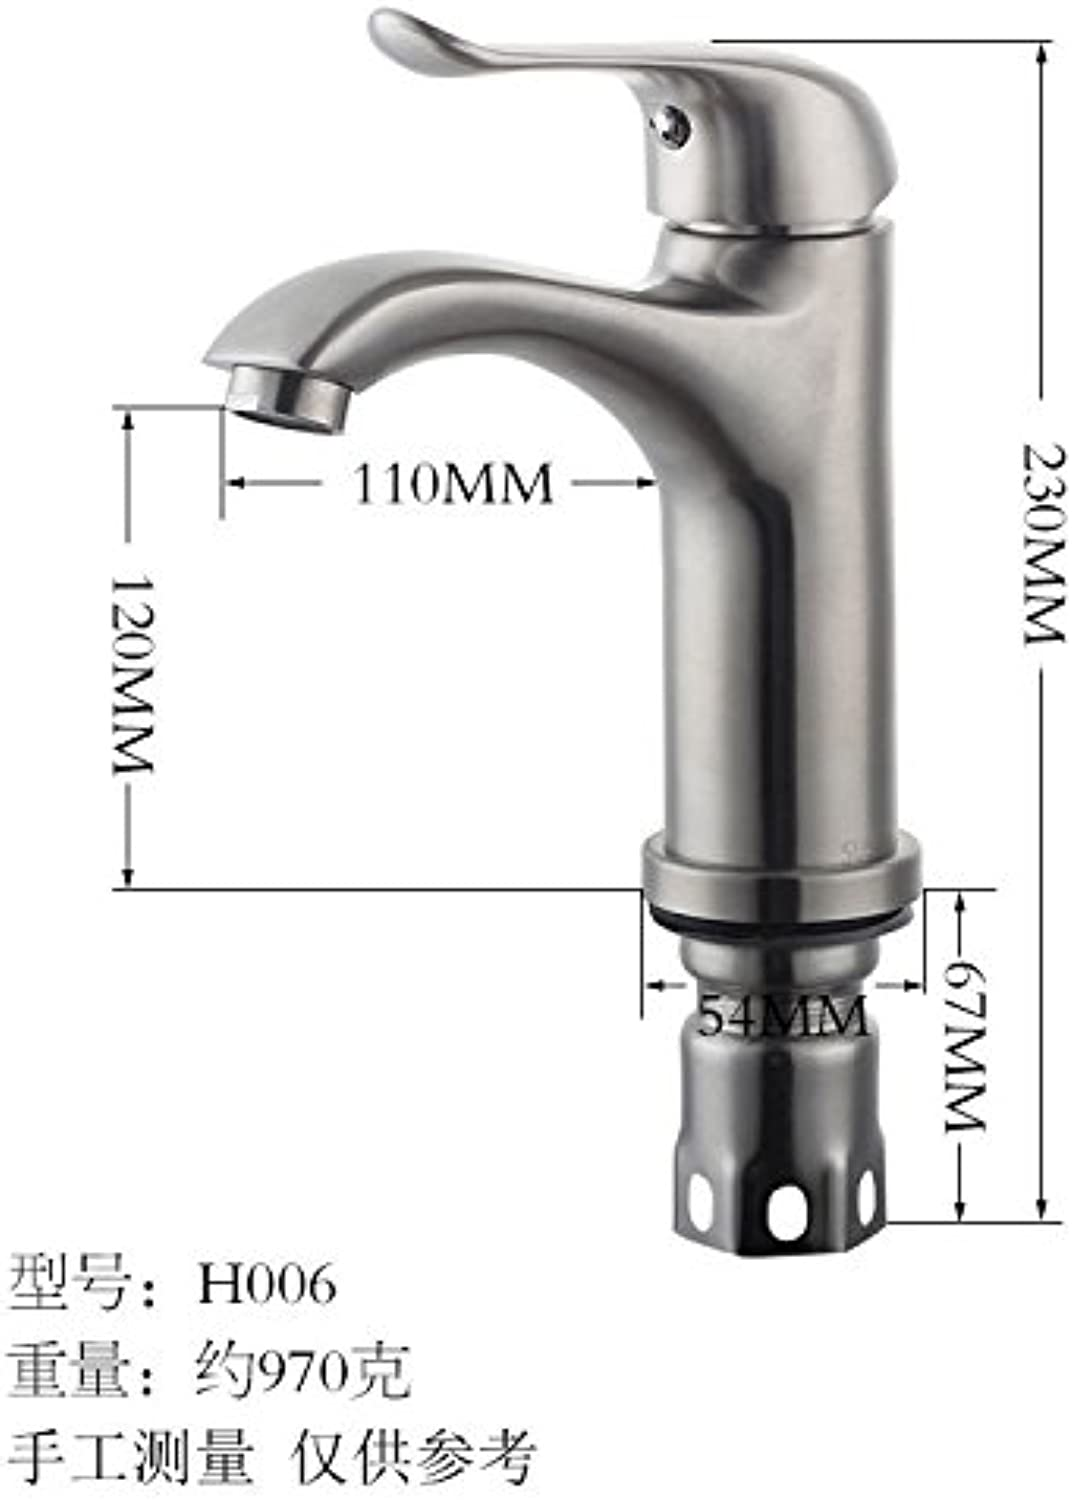 Lpophy Bathroom Sink Mixer Taps Faucet Bath Waterfall Cold and Hot Water Tap for Washroom Bathroom and Kitchen 304 Stainless Steel Brushed Hot and Cold greenical D